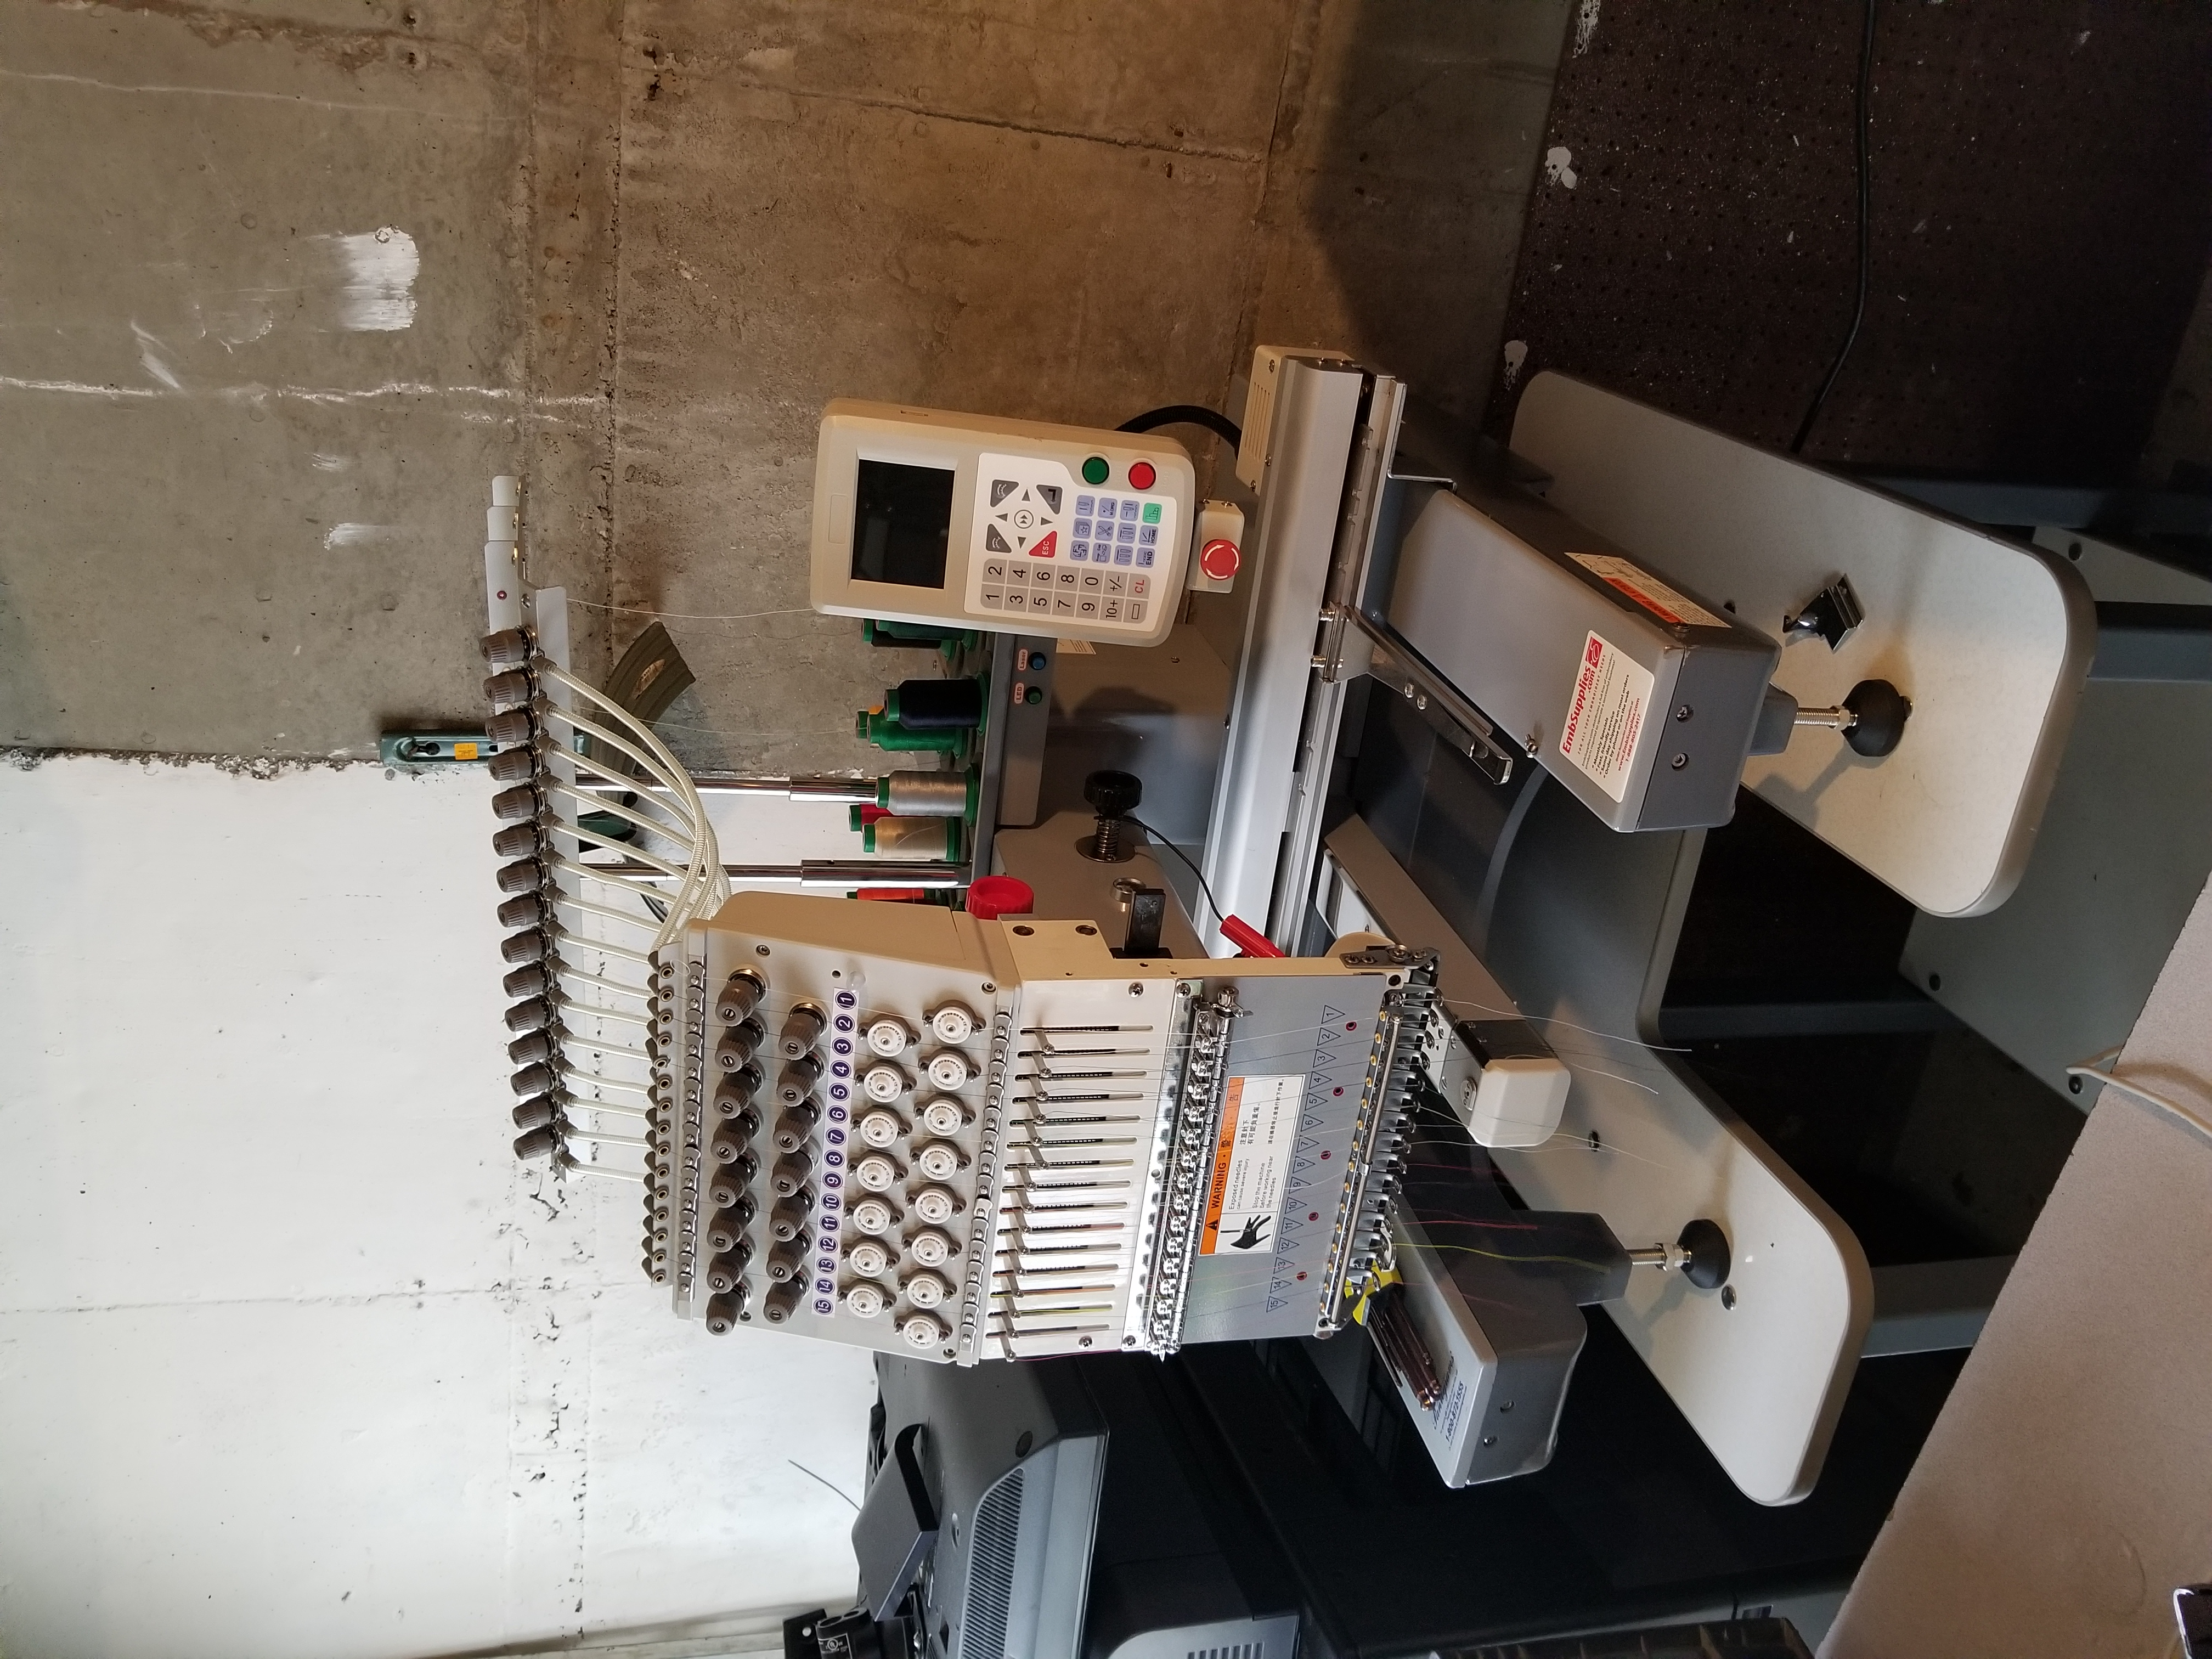 Used Gs1501 Pantograms 15 Needle Commercial Embroidery Machine